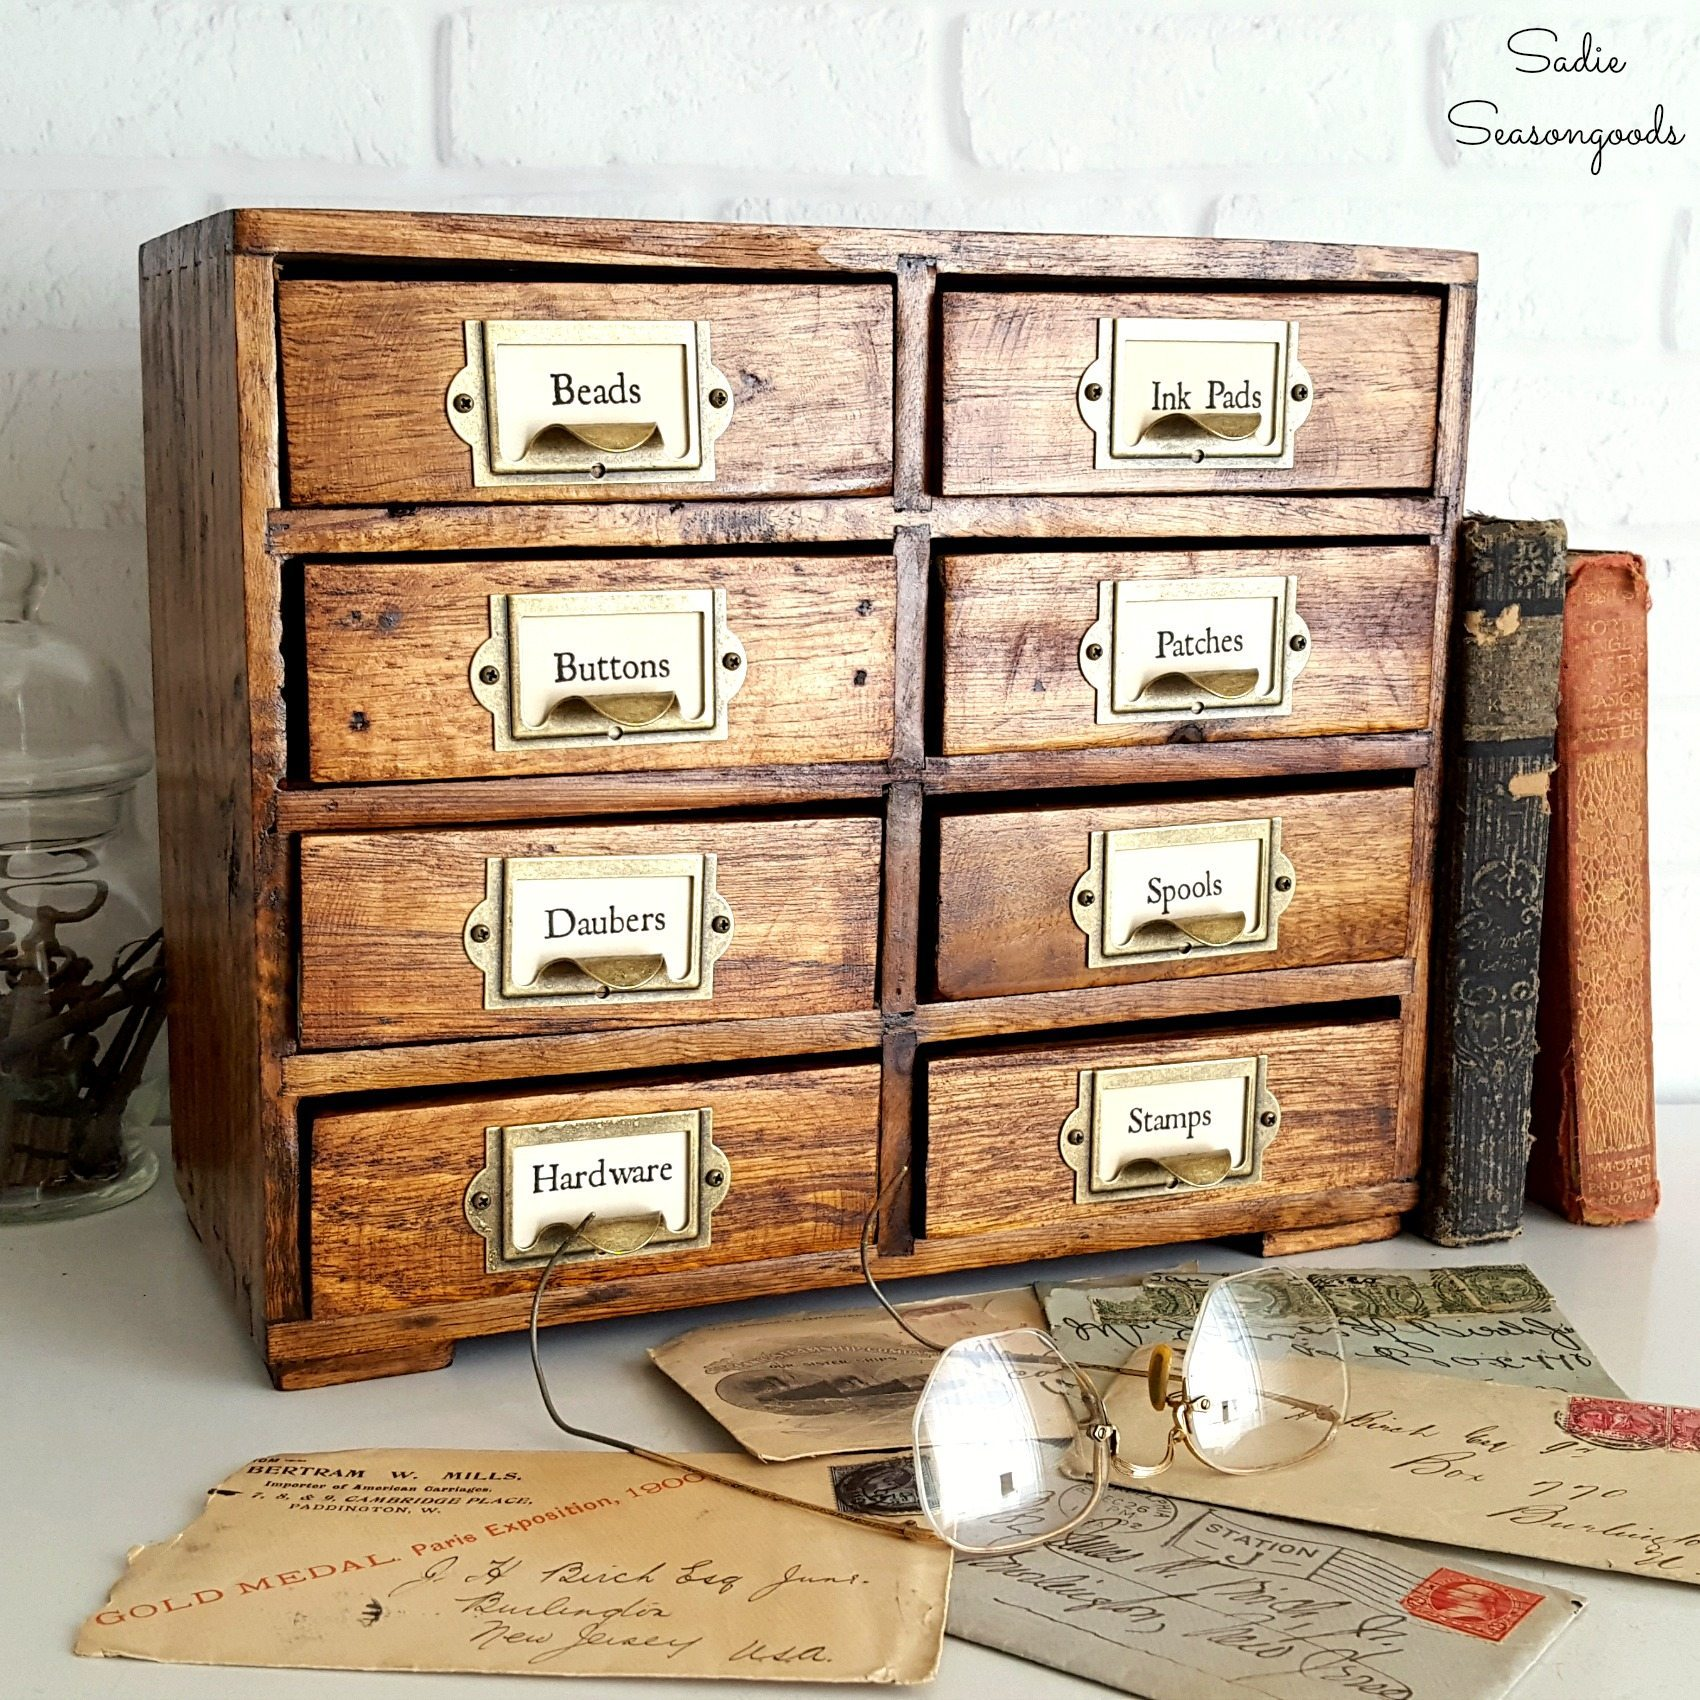 Repurposed_painted_set_of_mini_drawers_refinished_to_look_like_vintage_library_card_catalog_by_Sadie_Seasongoods-Copy